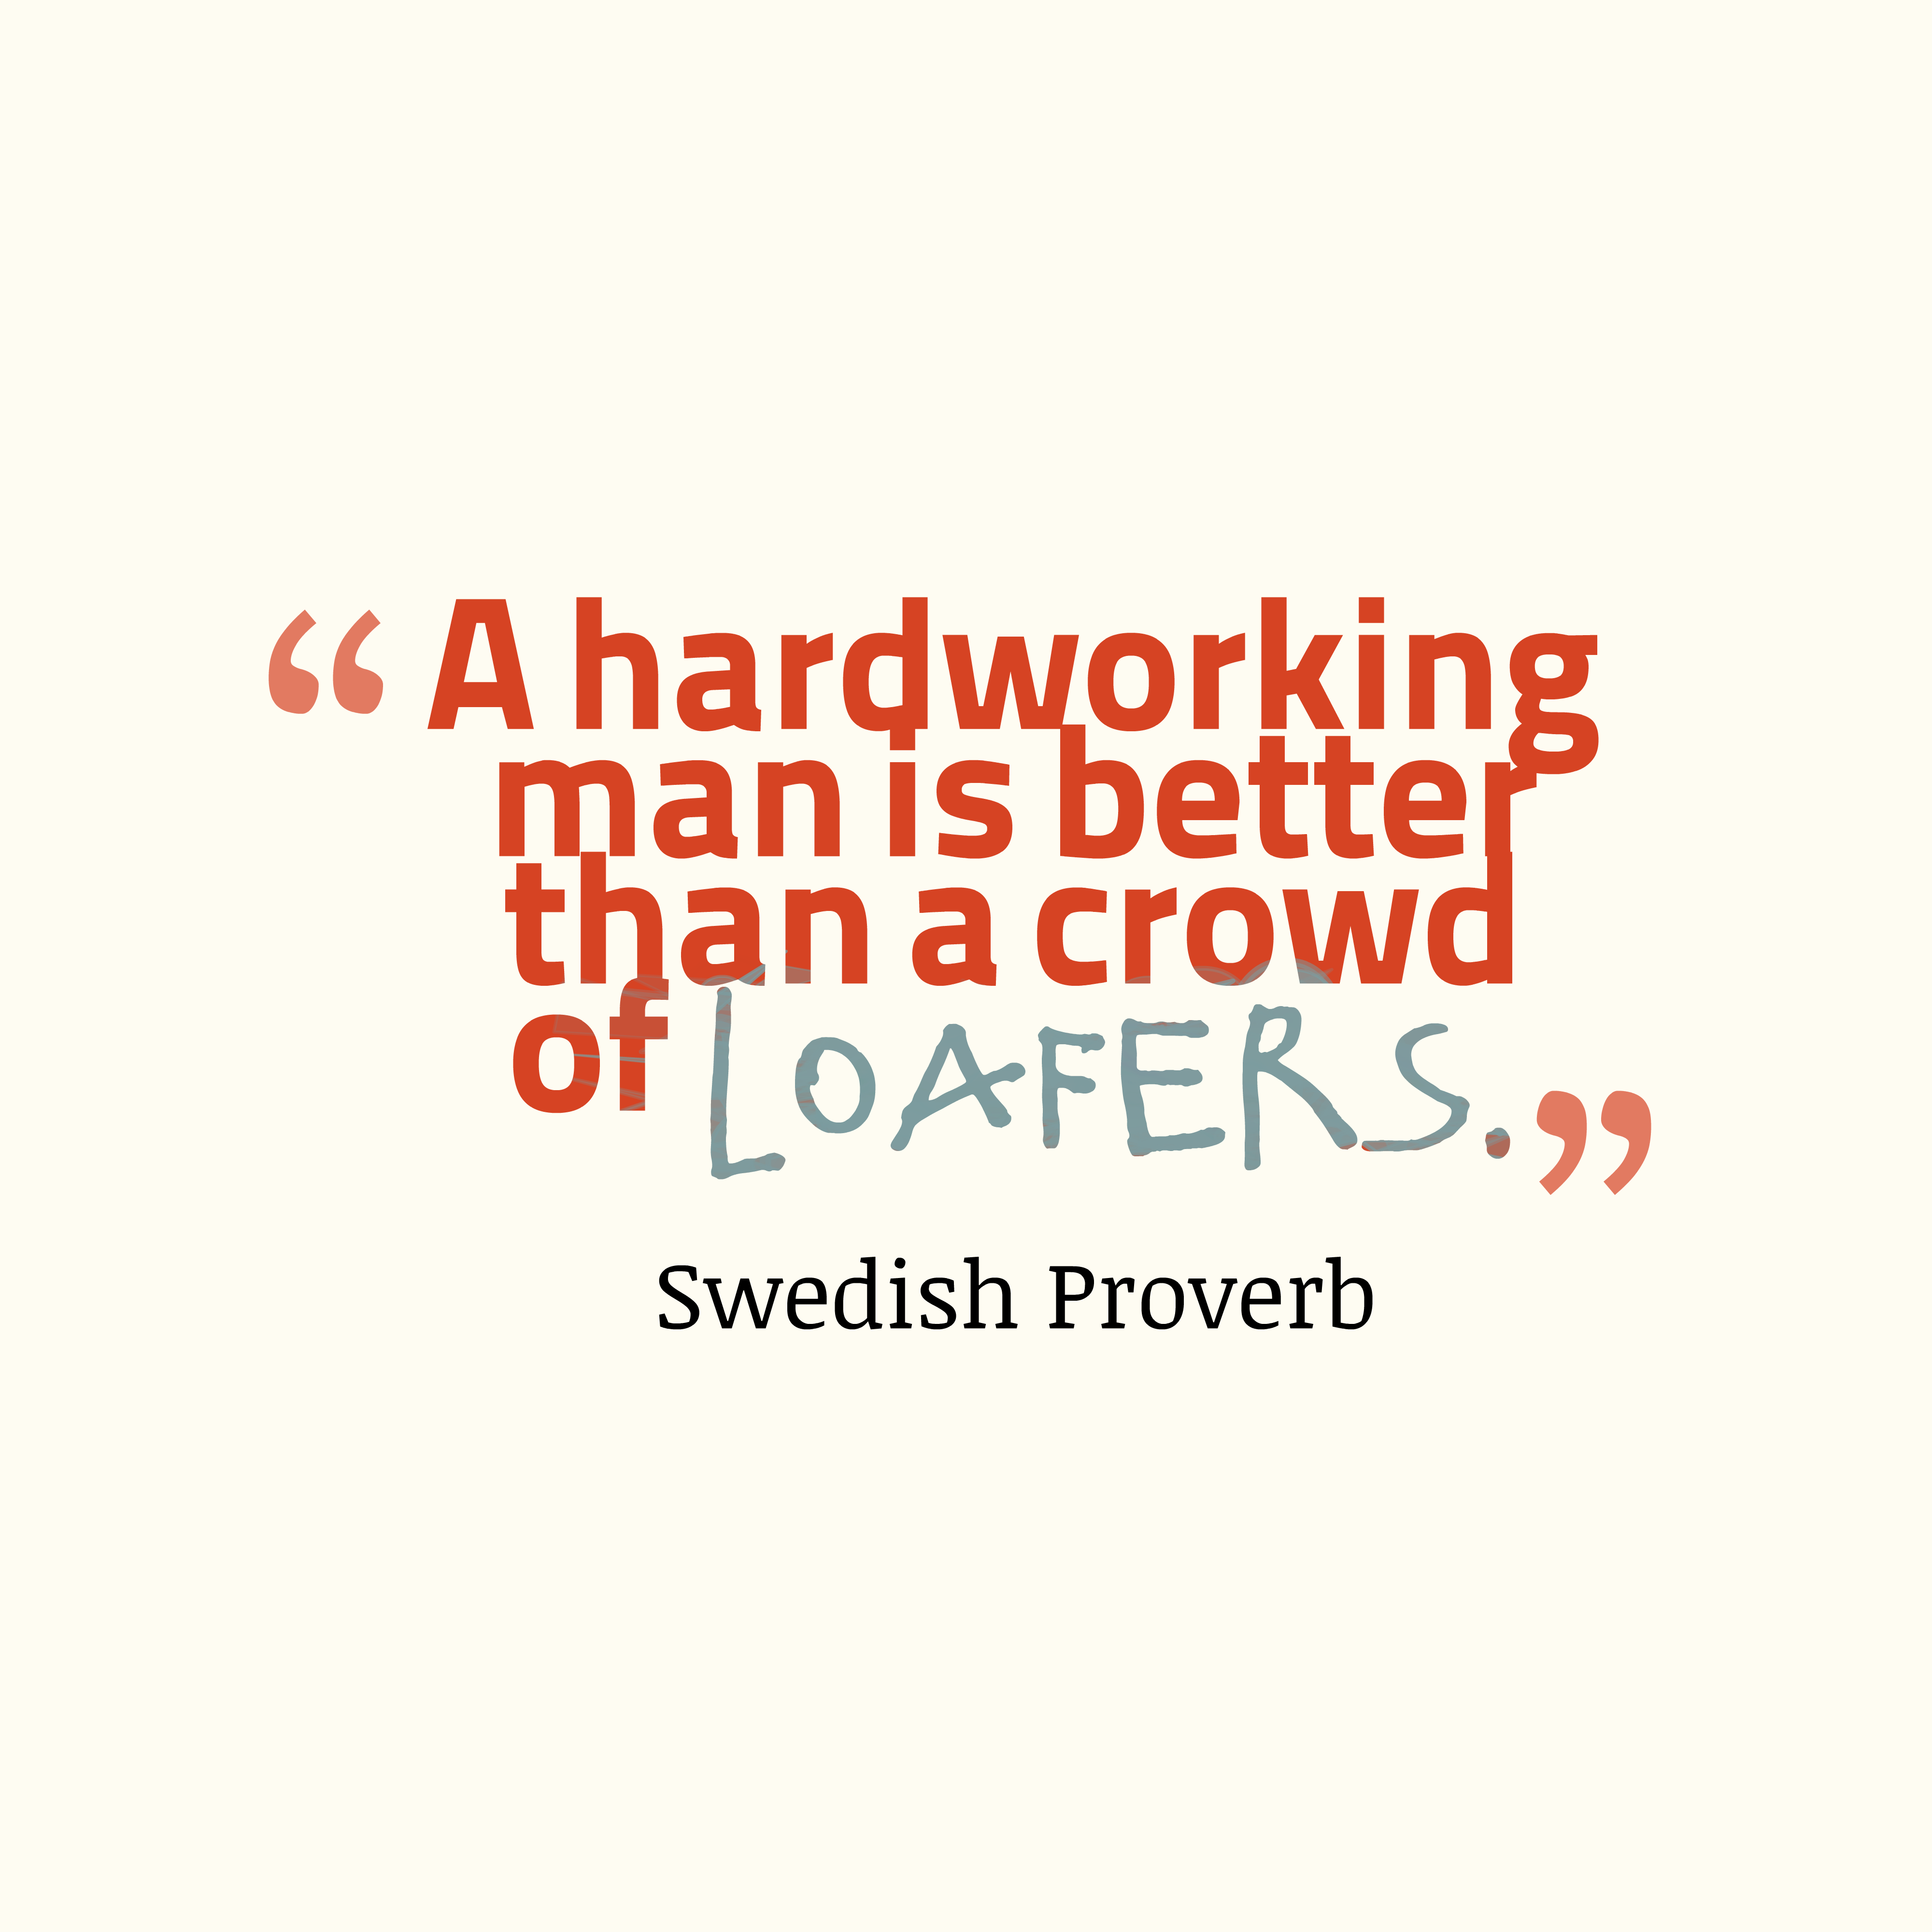 Quotes image of A hardworking man is better than a crowd of loafers.